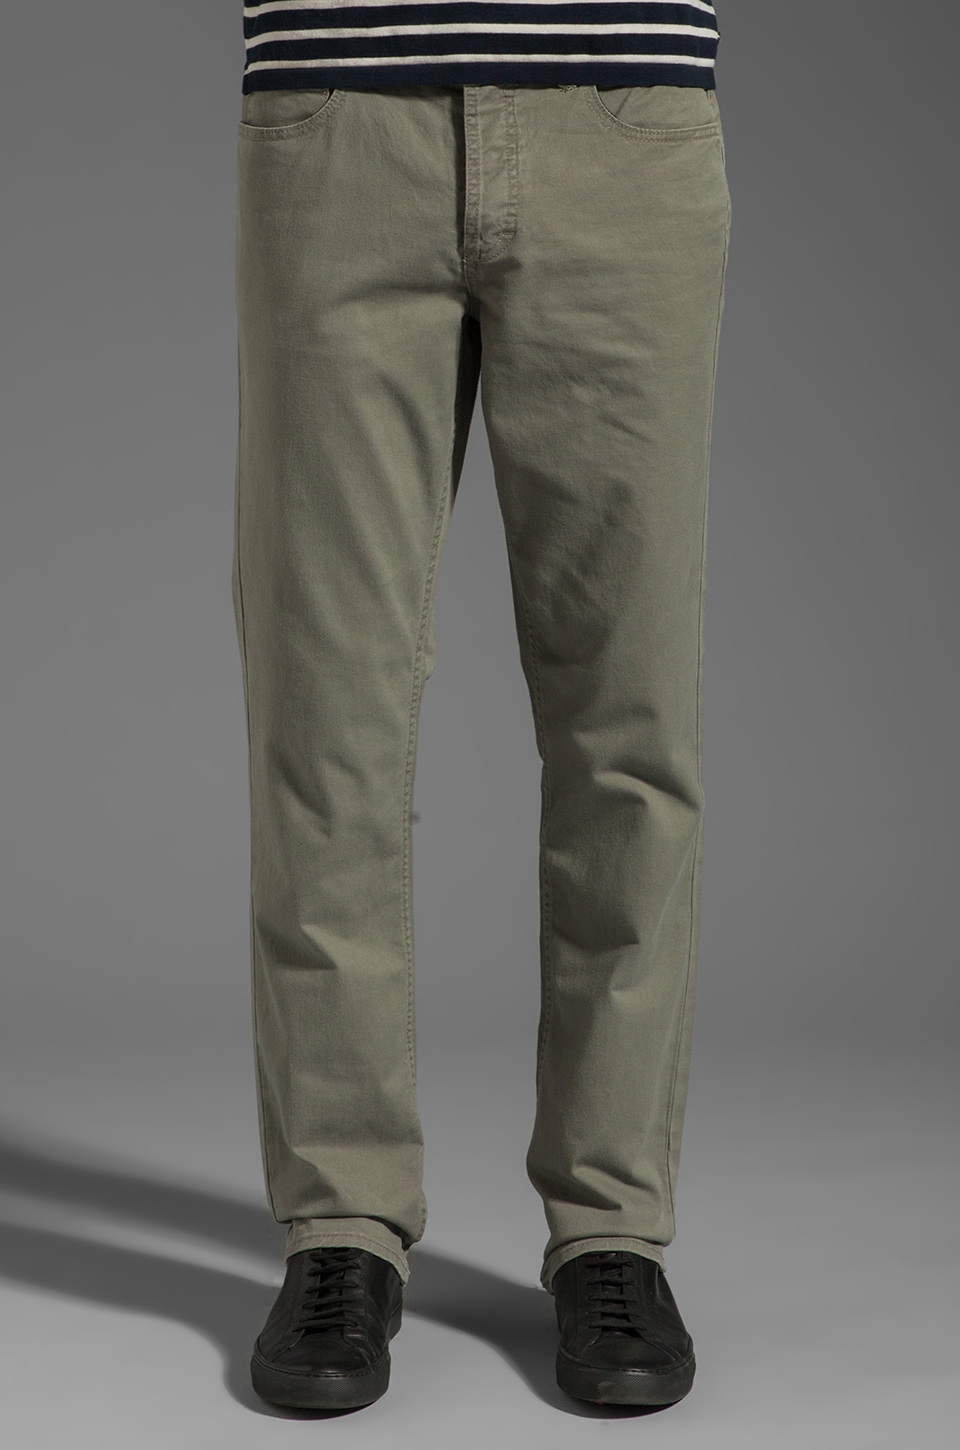 RVCA Stay RVCA Pant in Olive Mute